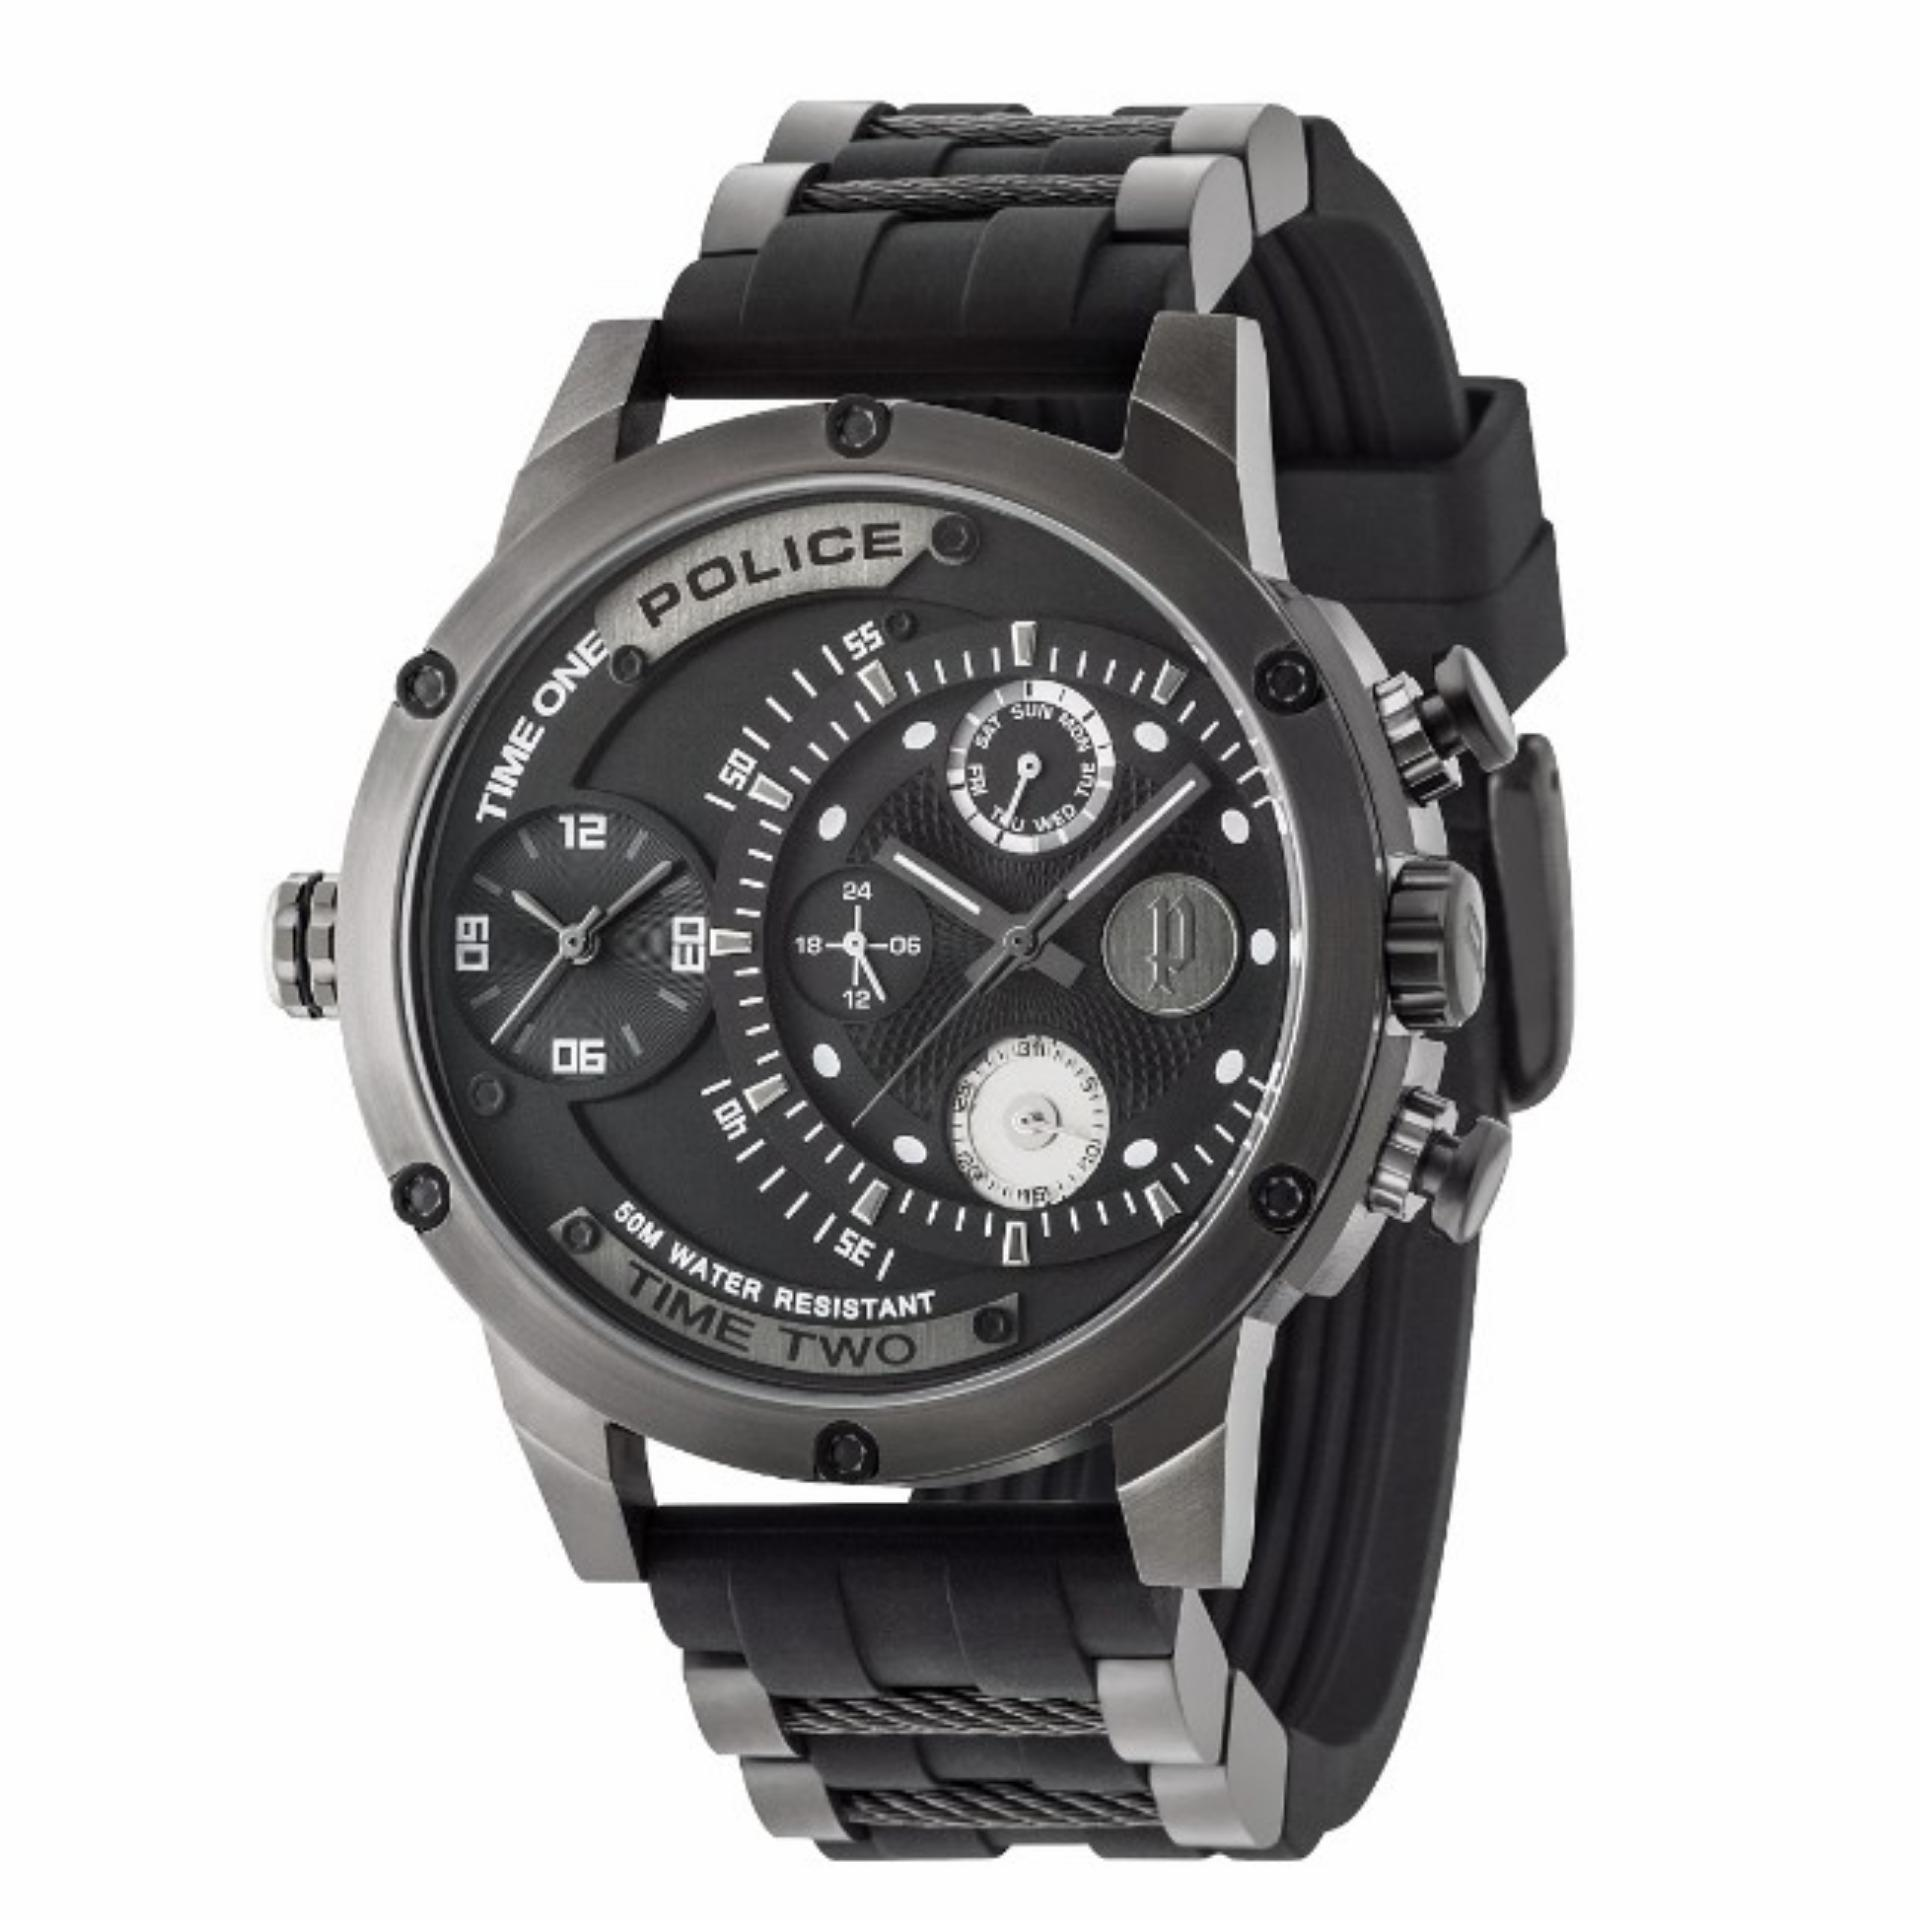 66a06214f32 Police Philippines  Police price list - Watches